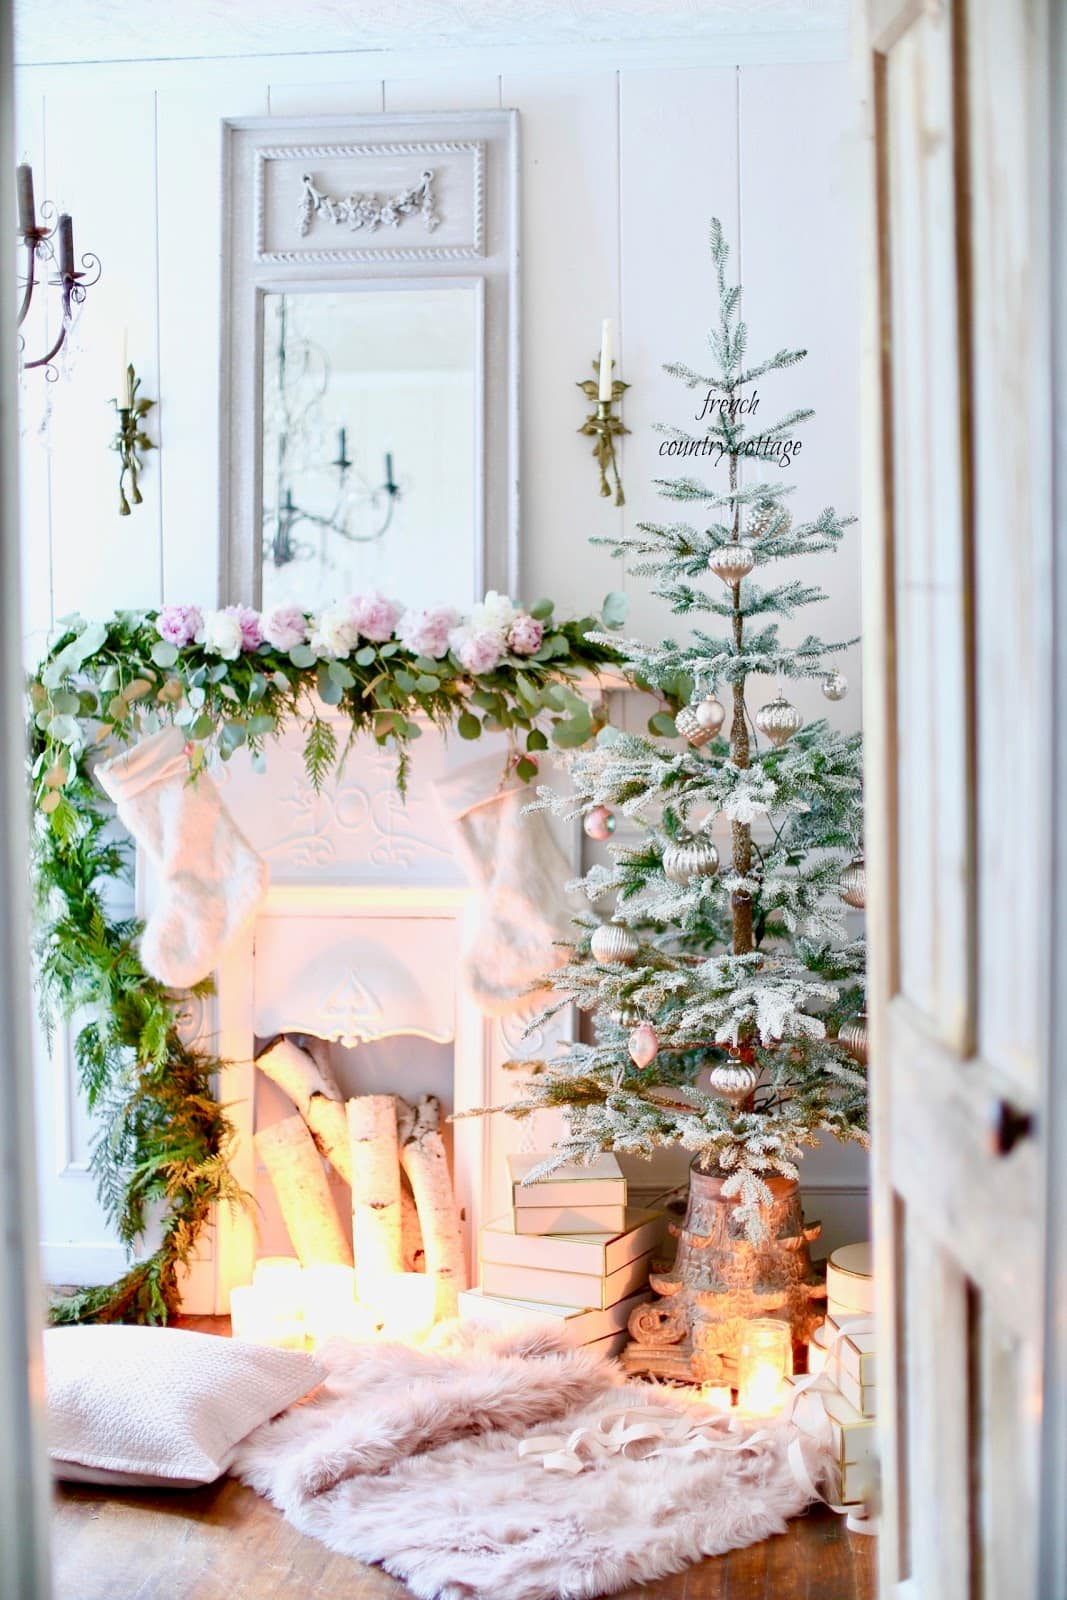 French Country Cottage Christmas in office